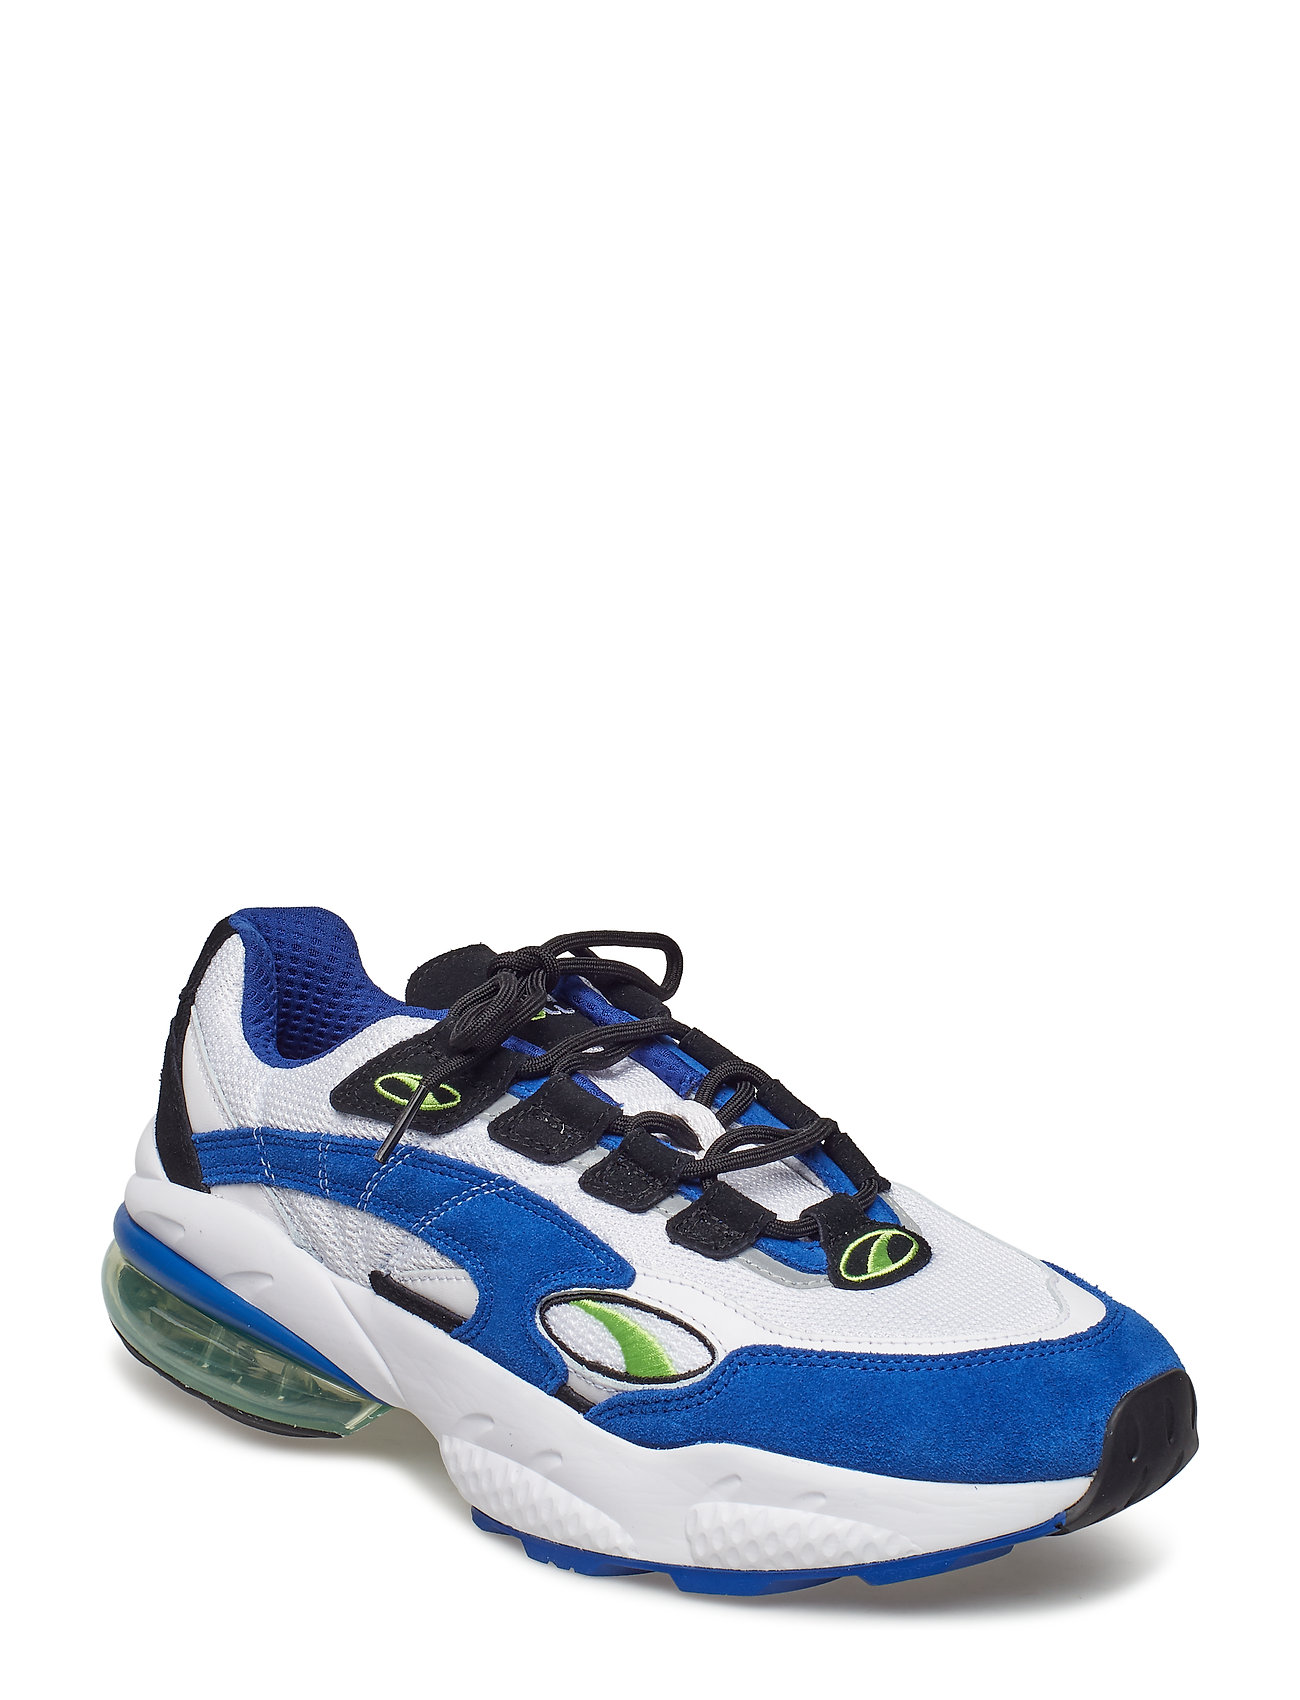 PUMA Cell Venom - PUMA WHITE-SURF THE WEB